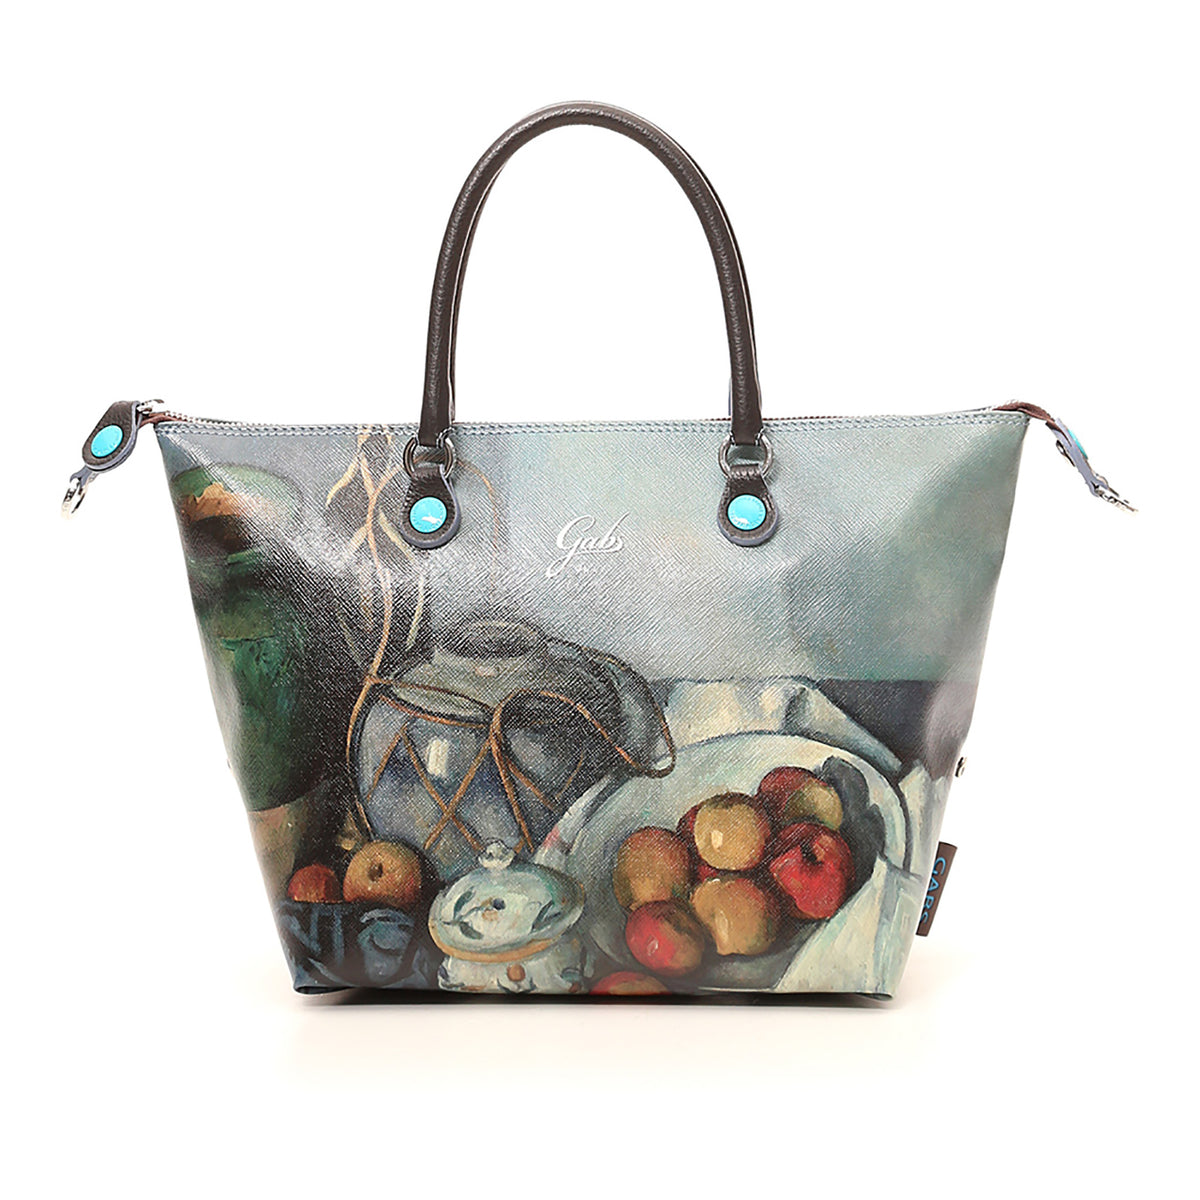 Small Convertible Hand Bag featuring Cezanne's Still Life with Apples by Gabs, Italy | Getty Store